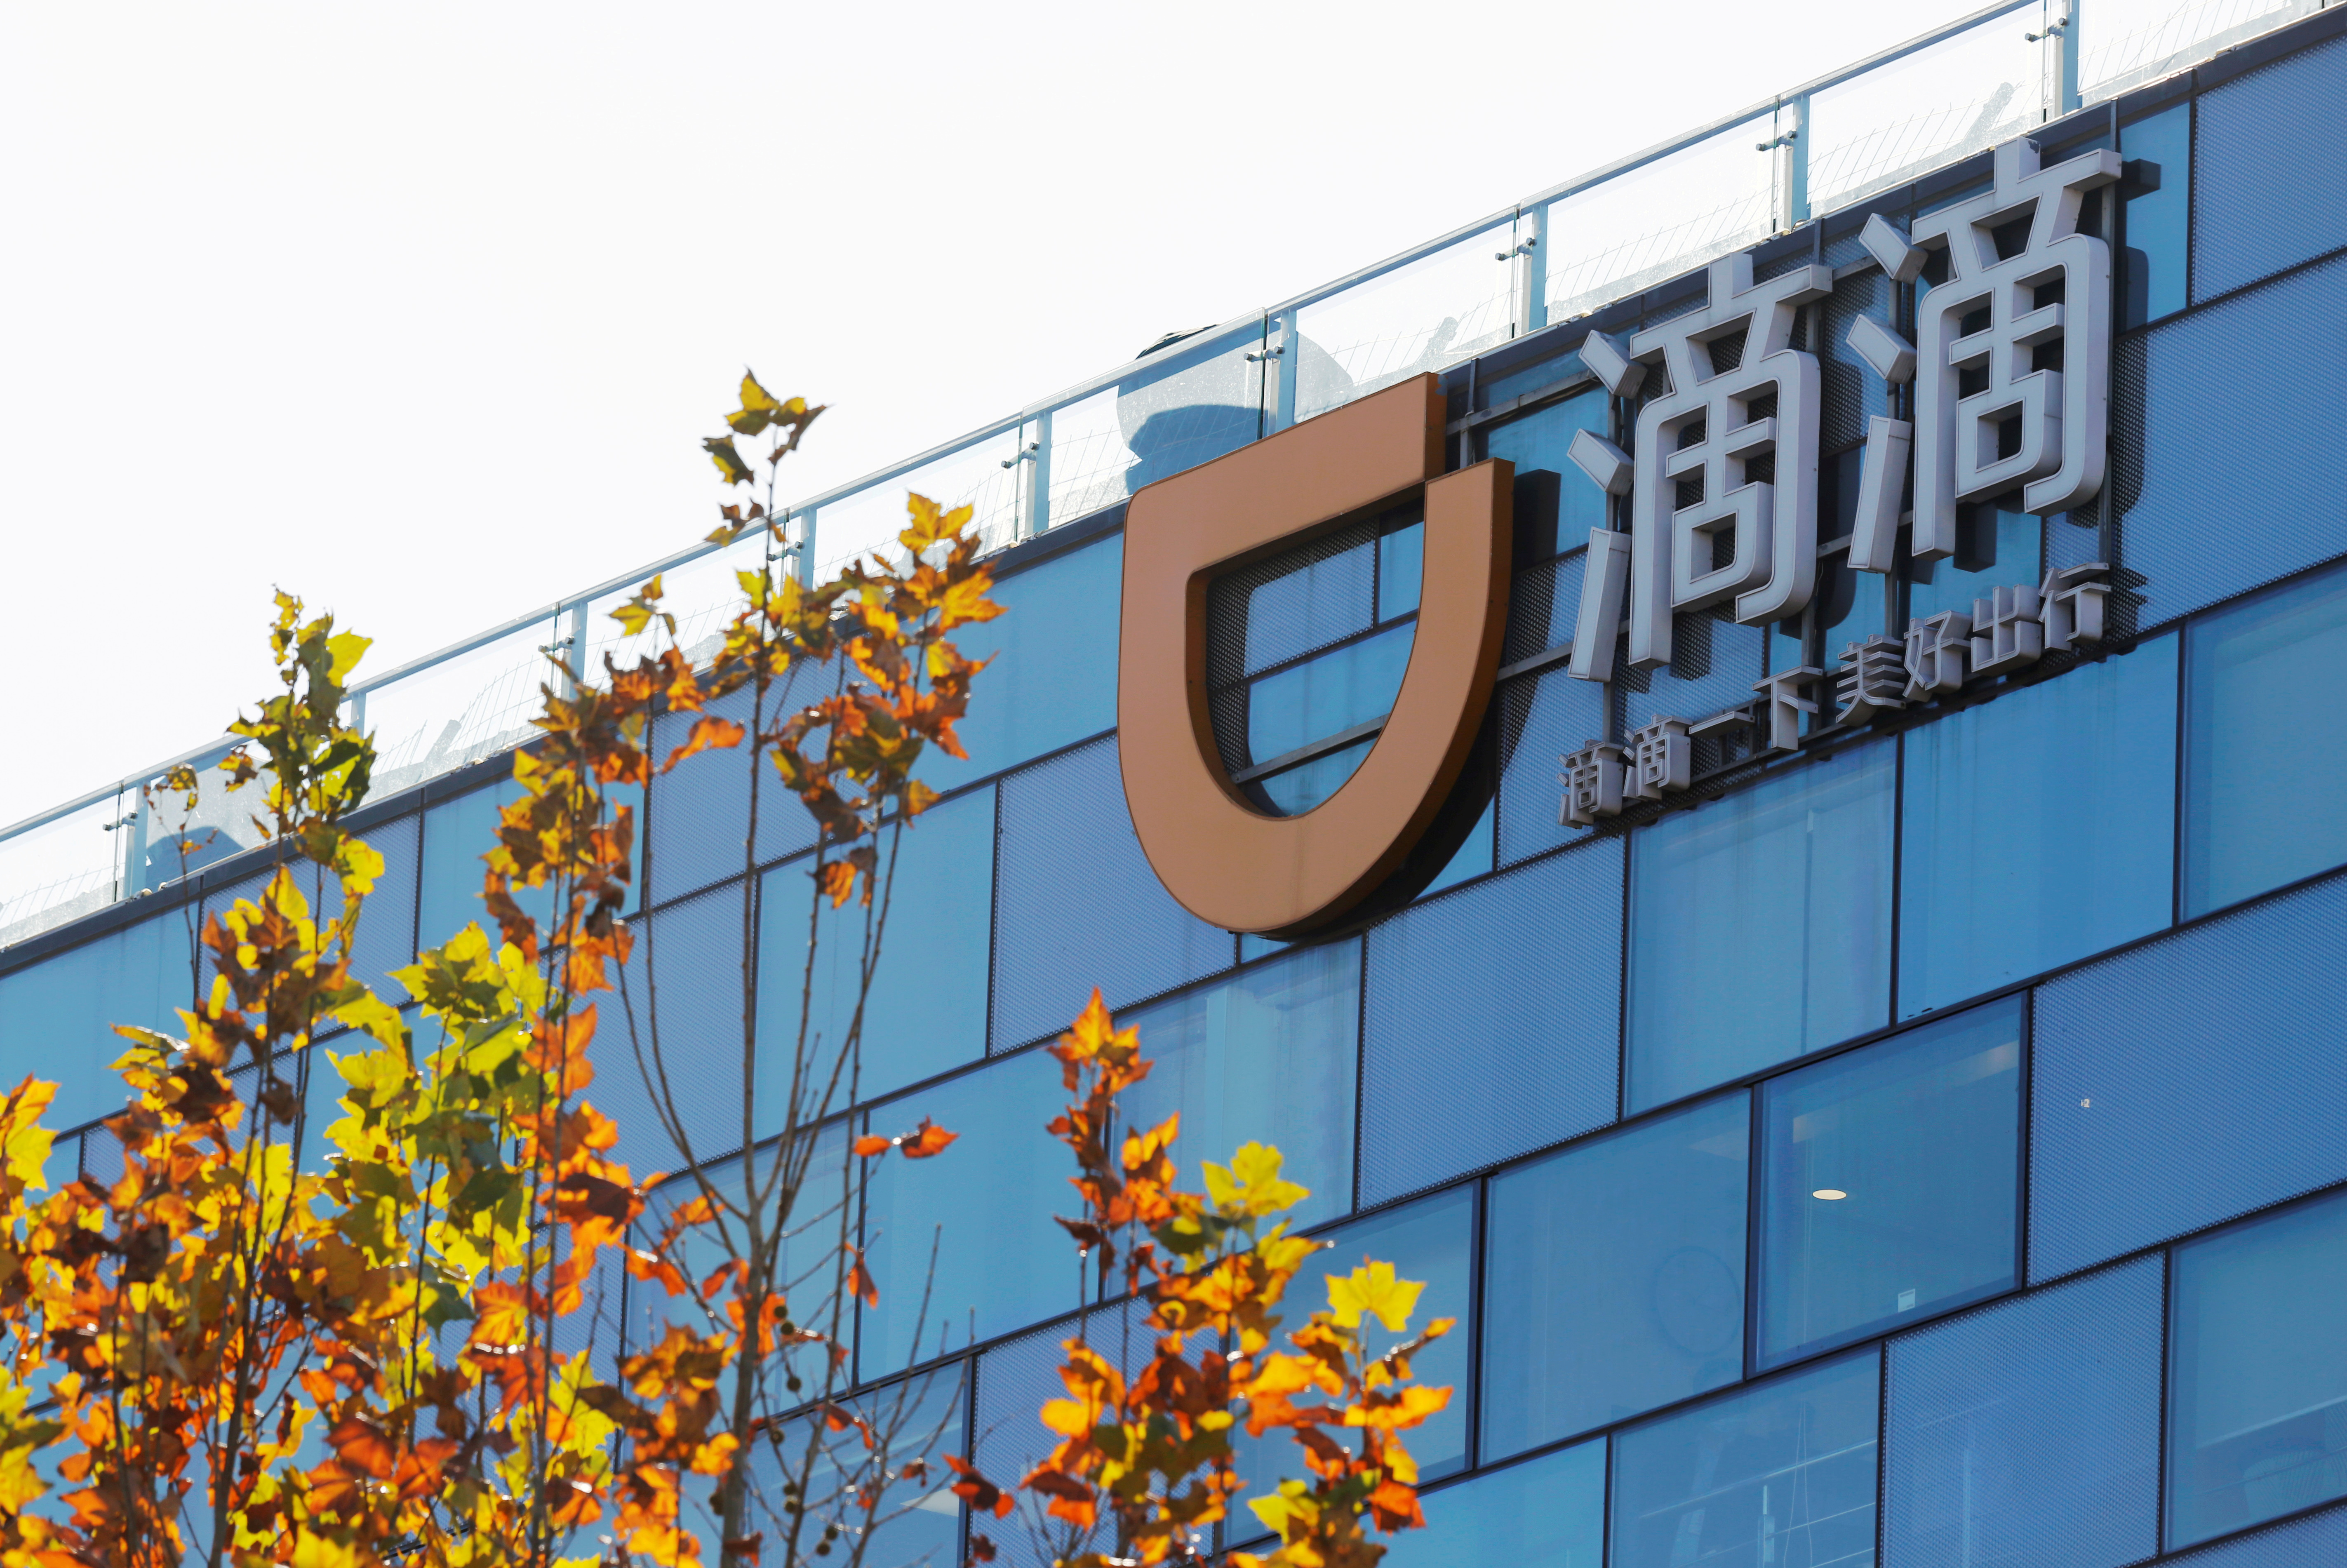 A Didi logo is seen at the headquarters of Didi Chuxing in Beijing, China November 20, 2020. REUTERS/Florence Lo